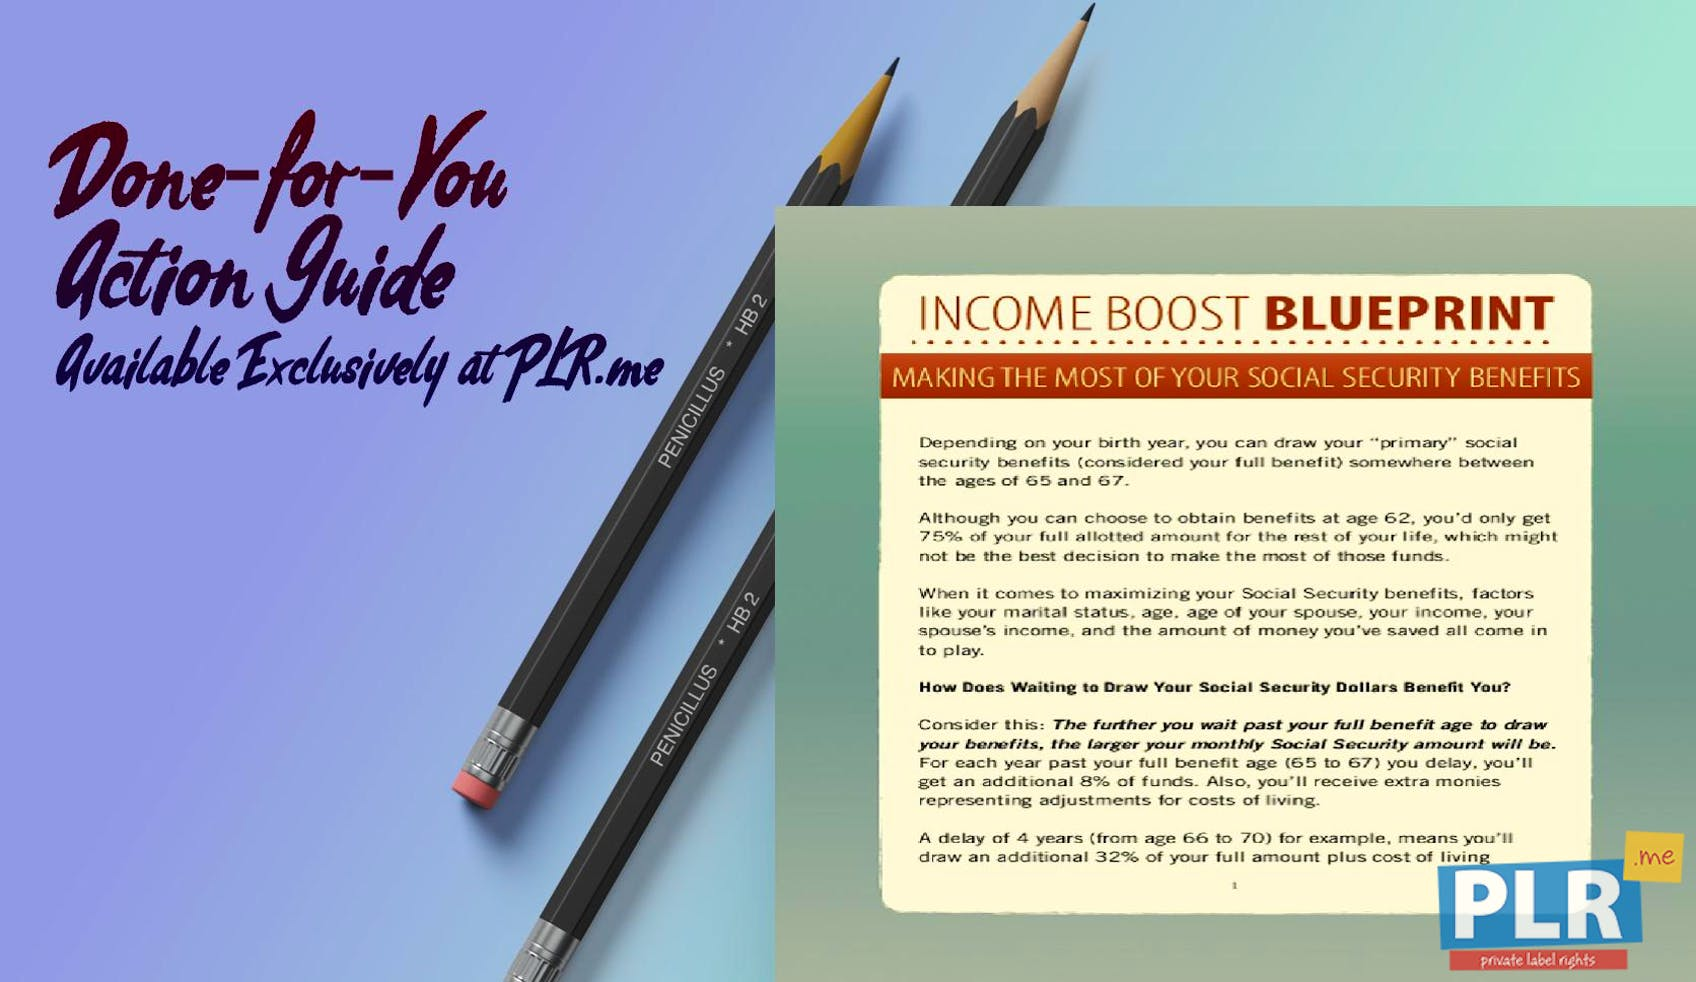 Income Boost Blueprint Making The Most Of Your Social Security Benefits